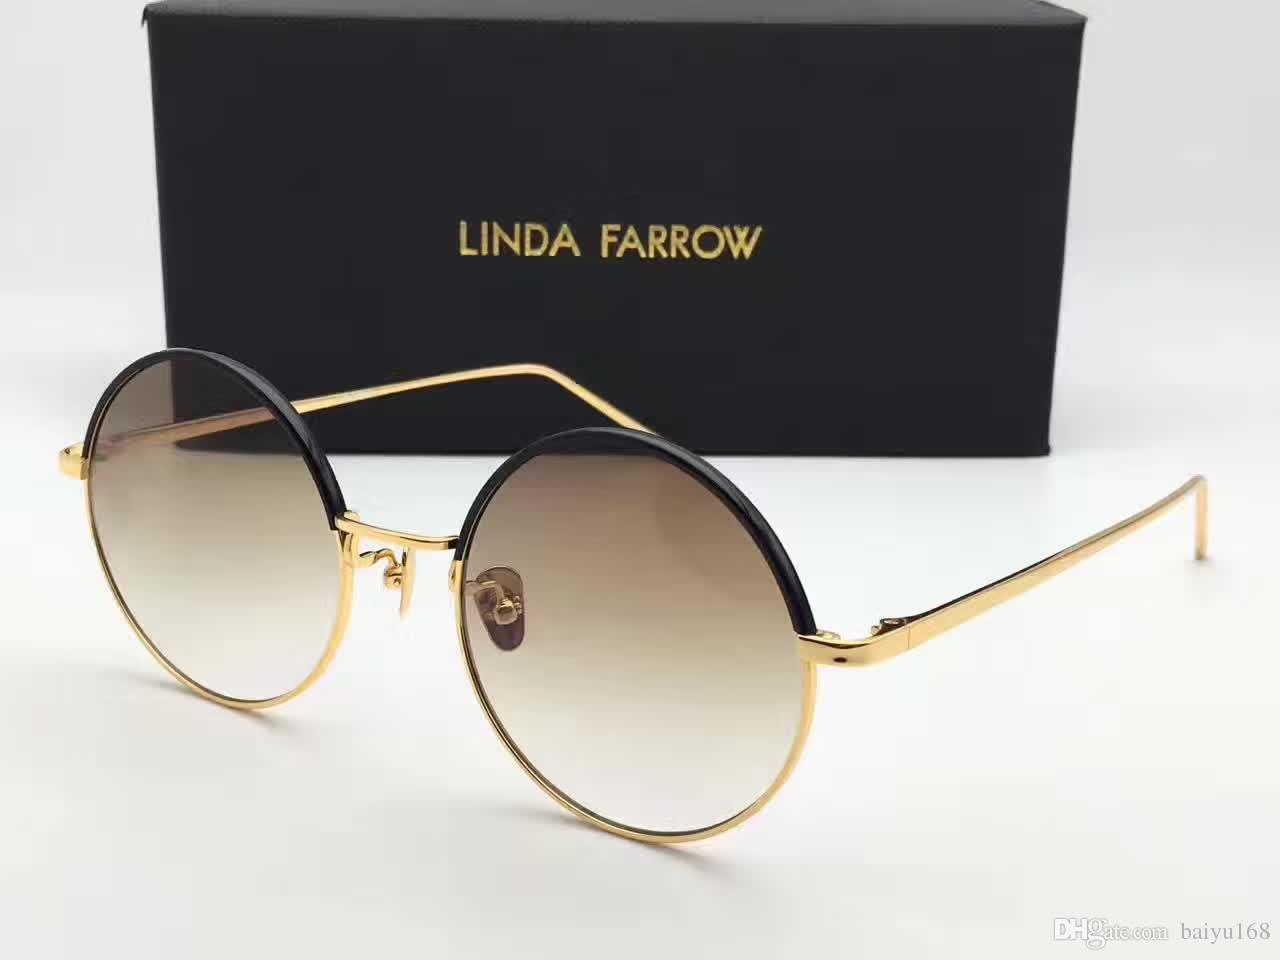 Linda Farrow Gold Sunglasses | Linda Farrow Oversized Round Sunglasses | Linda Farrow Sunglasses